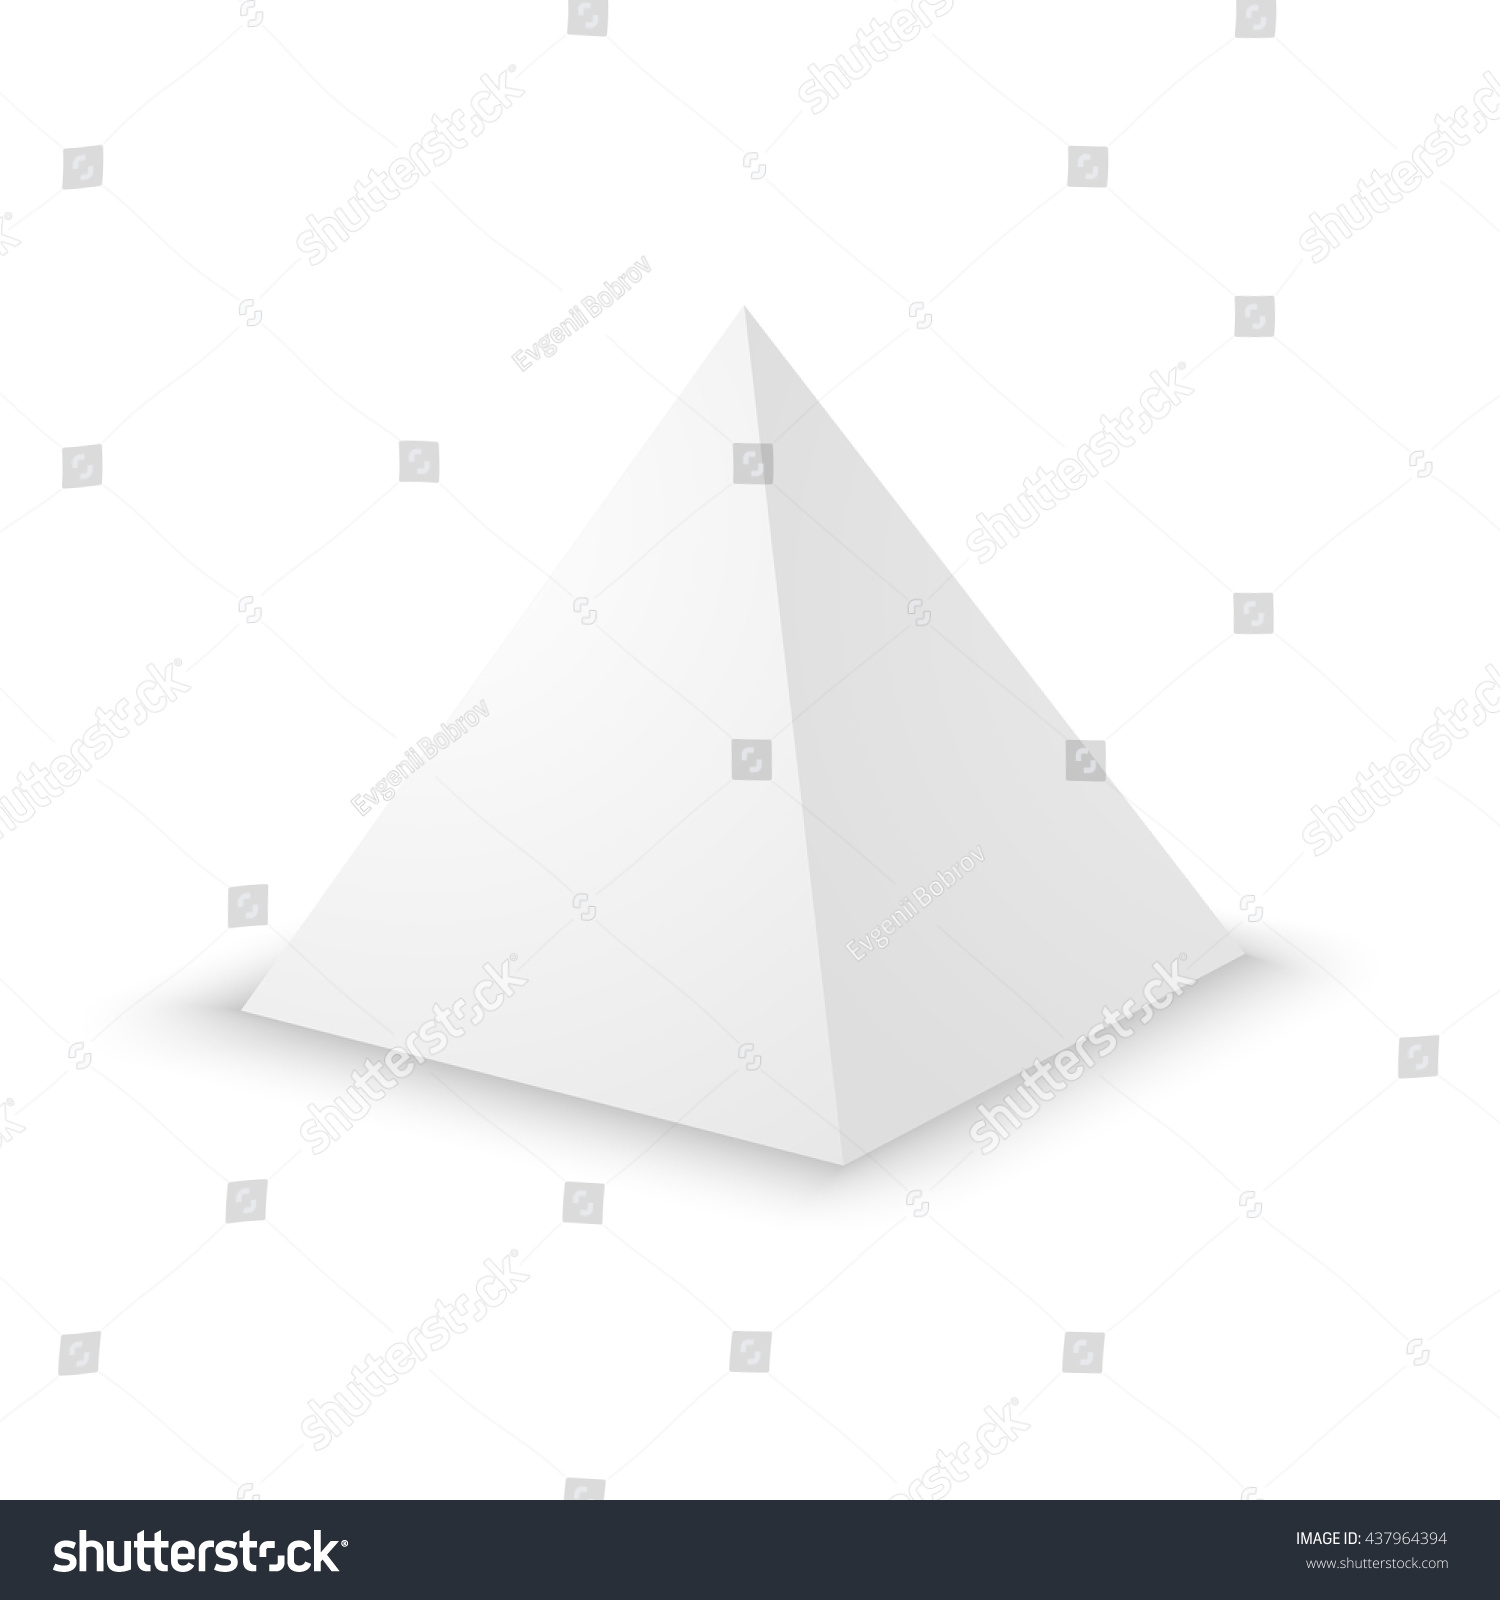 Blank White Pyramid On White Background Stock Vector Royalty Free